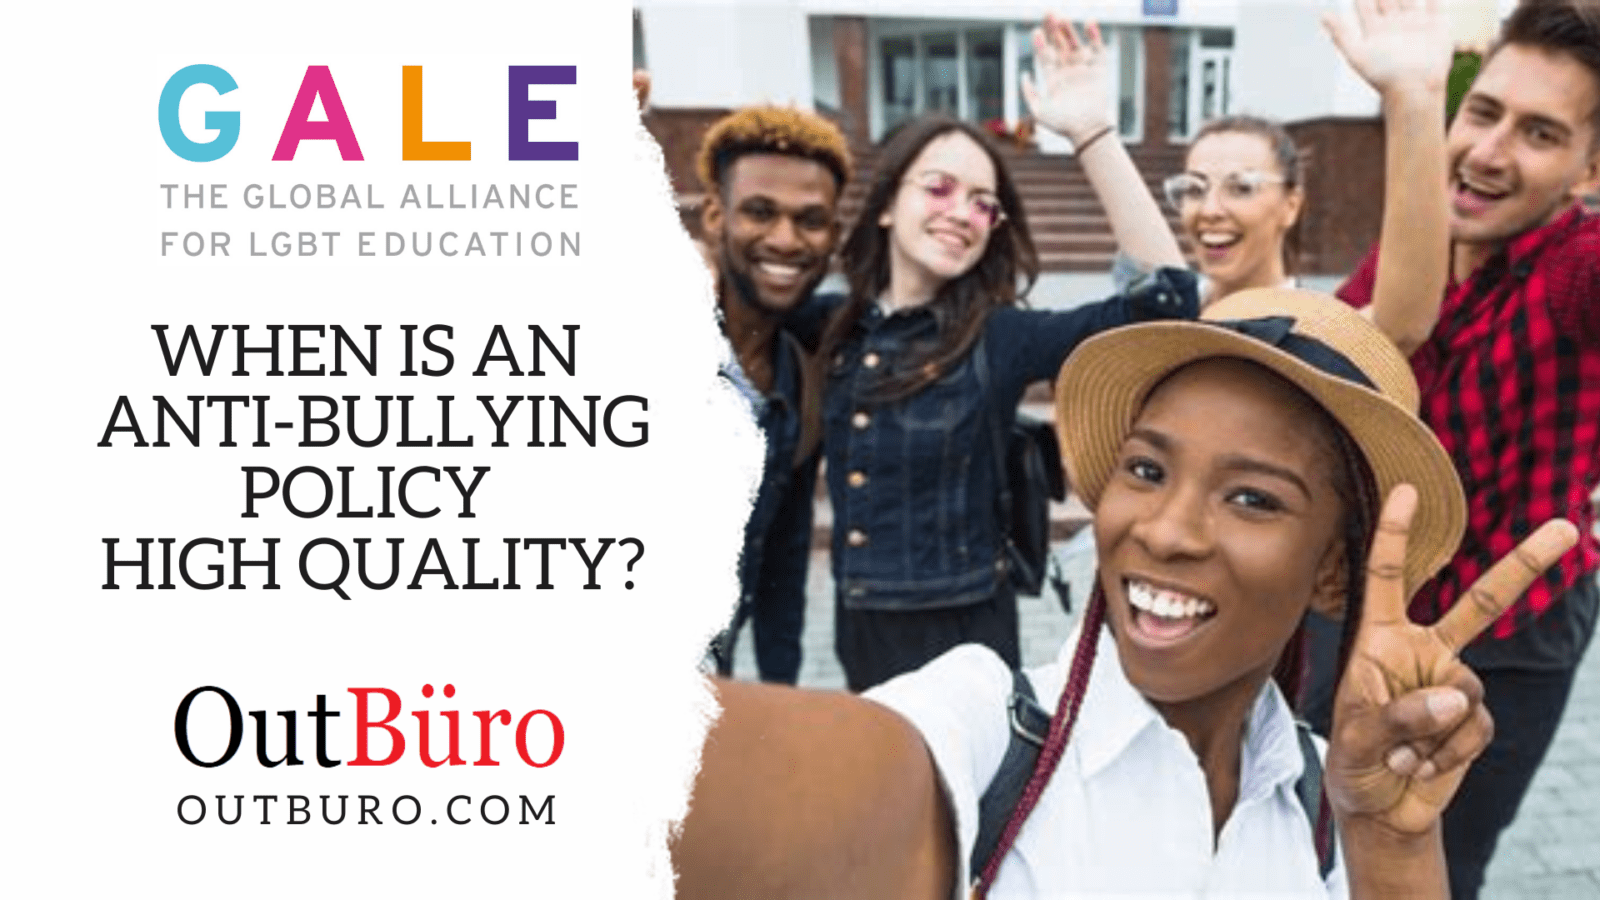 GALE Global Alliance for LGBT Education - When is an Anti-bullying Policy High Quality - LGBTQ students gay lesbian bisexual transgender queer - OutBuro